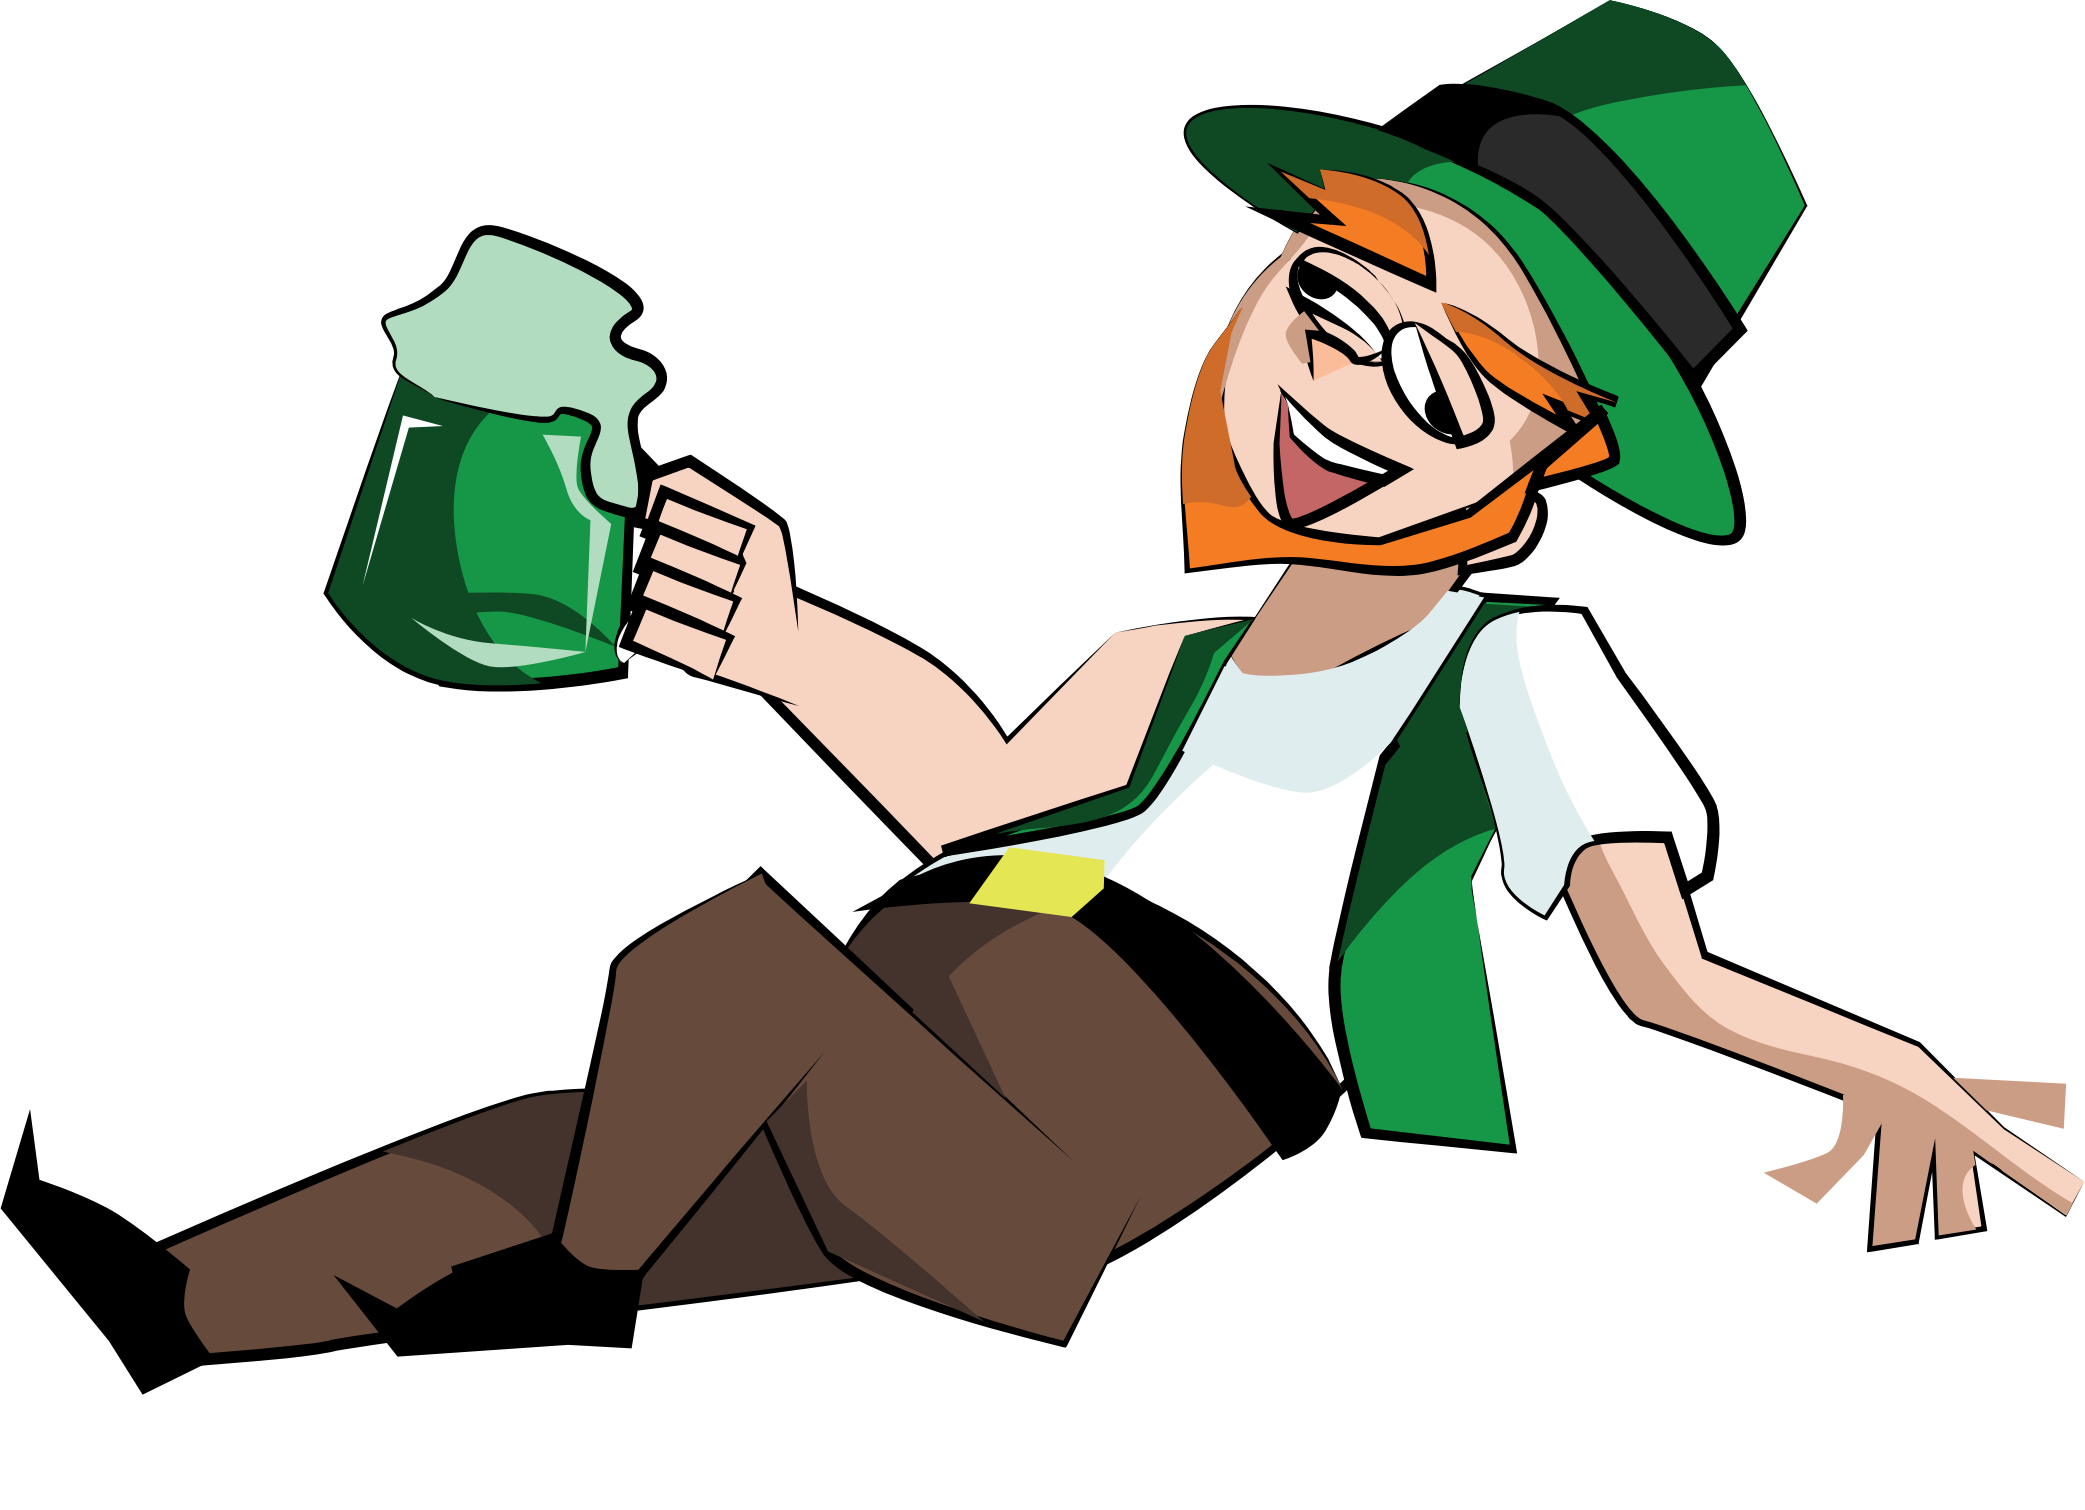 Drunk clip art clipart images gallery for free download.